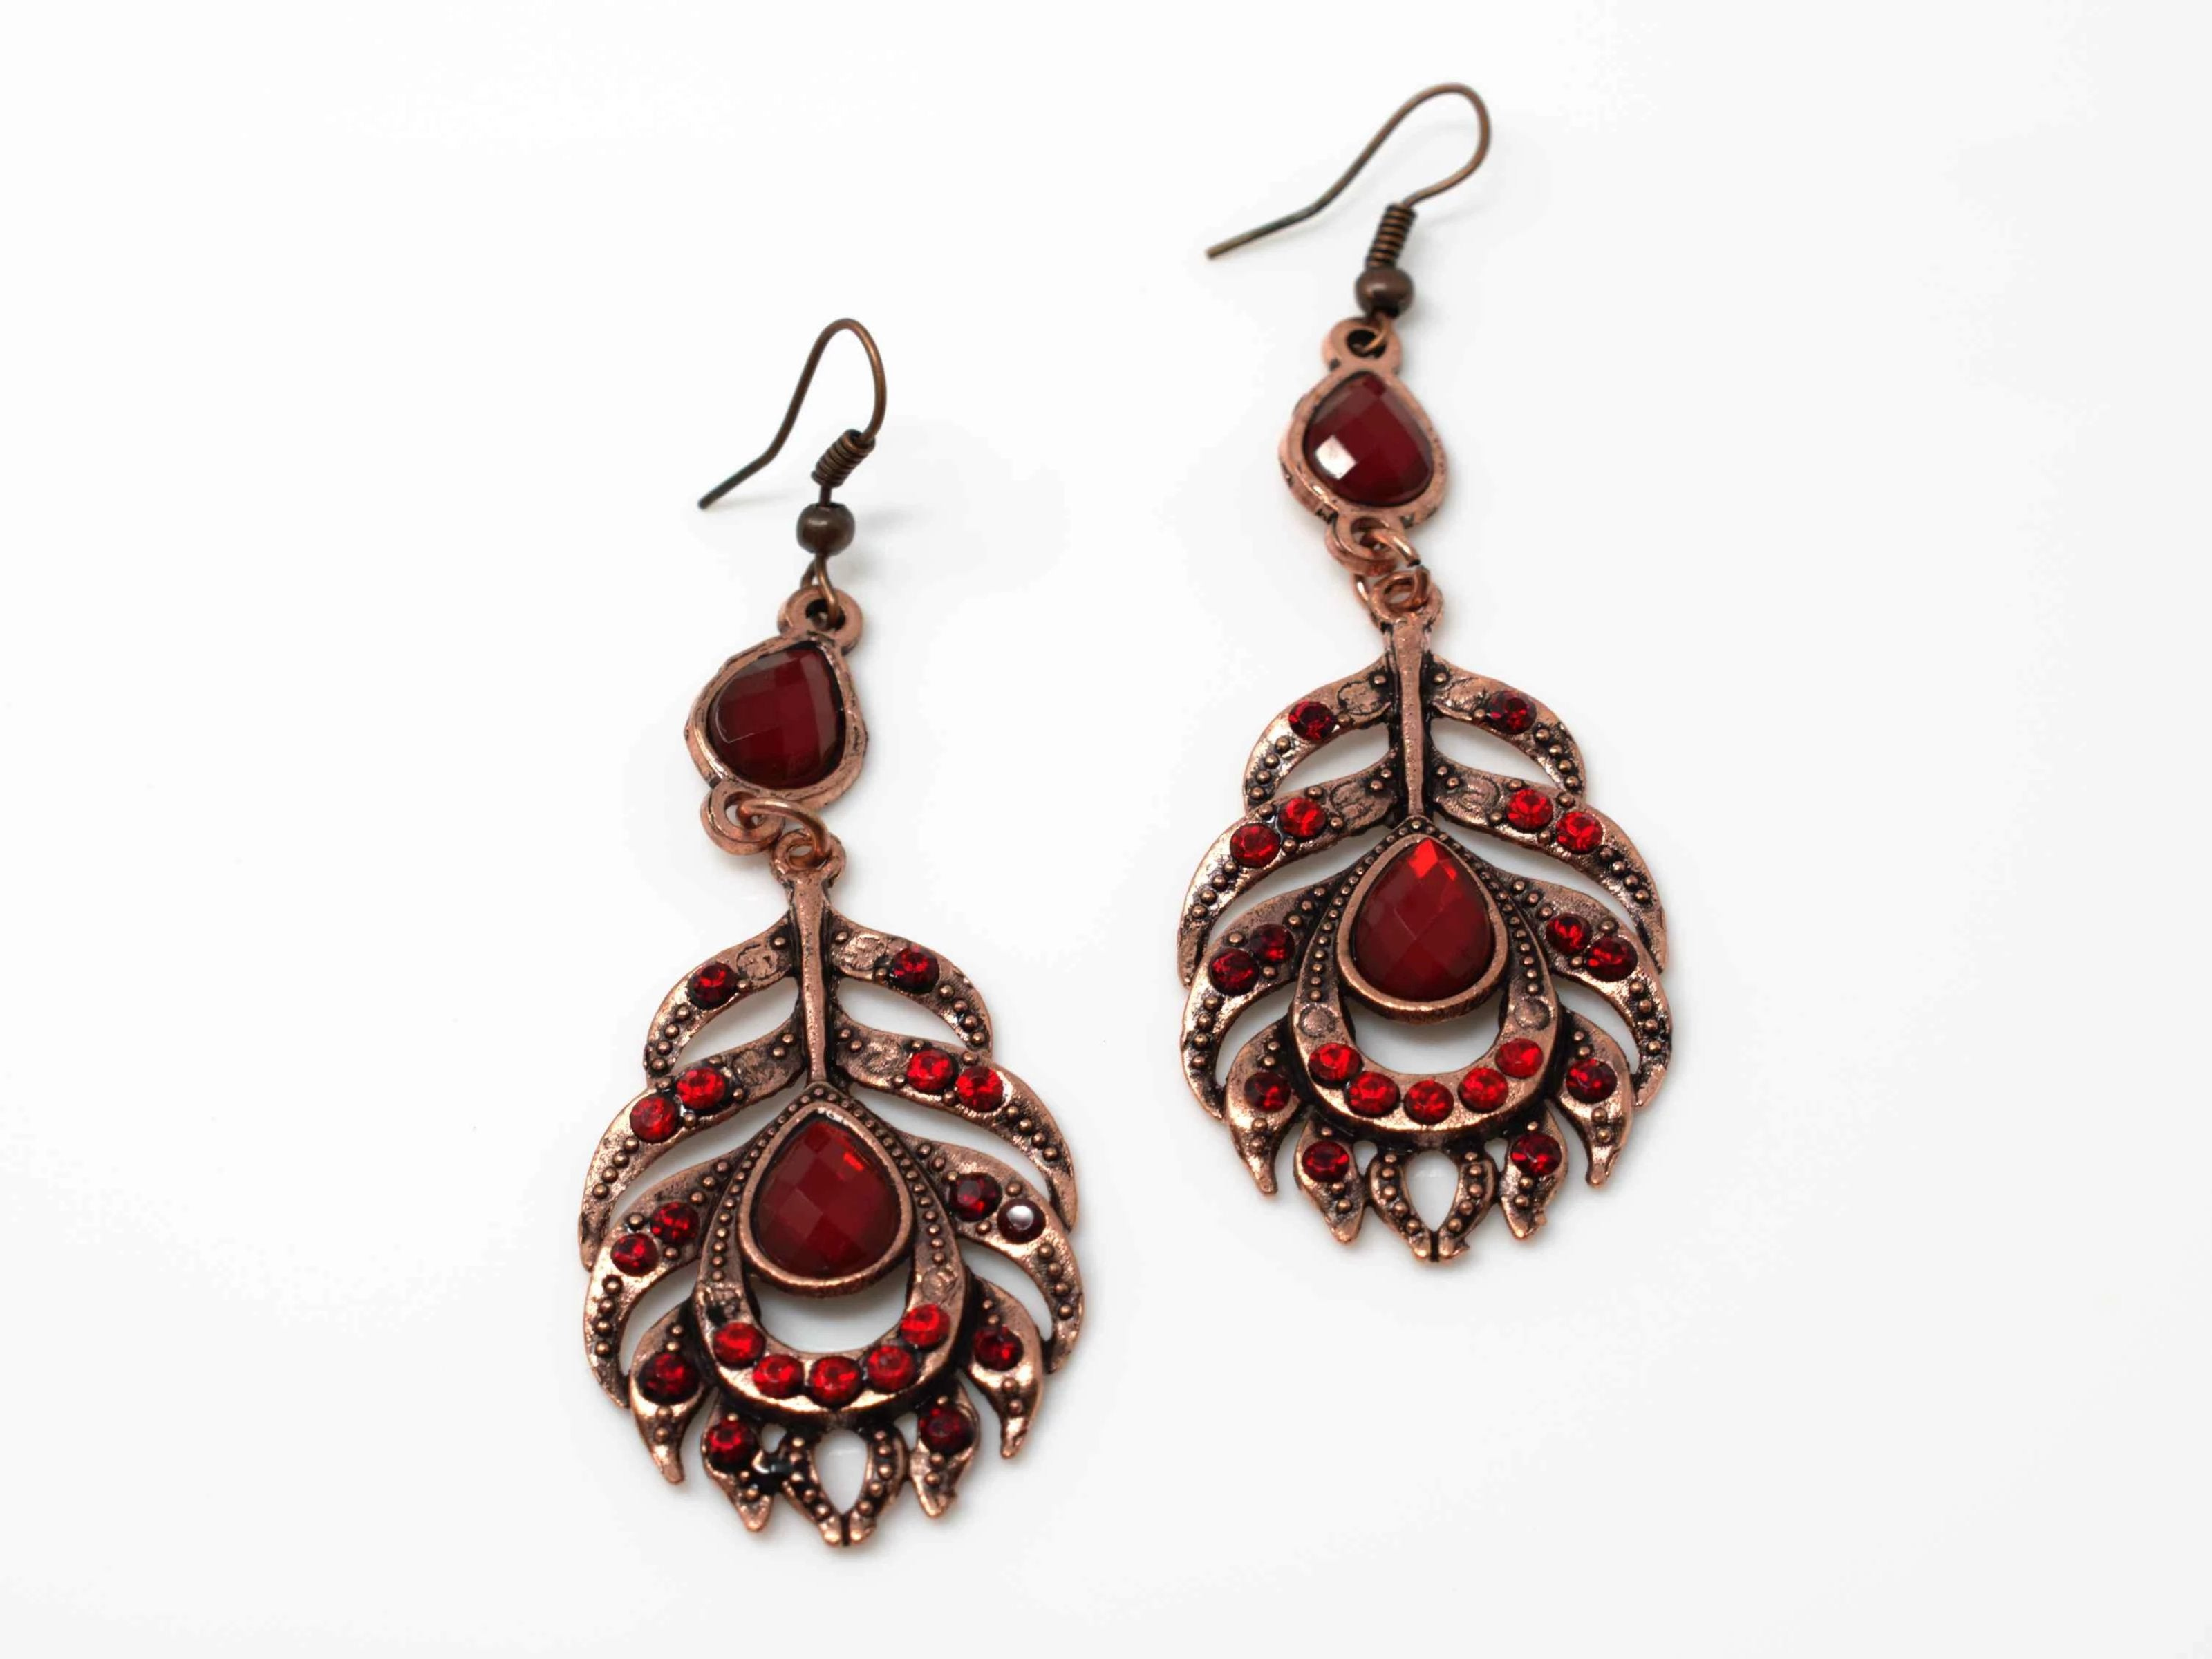 A dainty rose drop dangle feather fashion earring with red accent stones and a fish hook clasp.